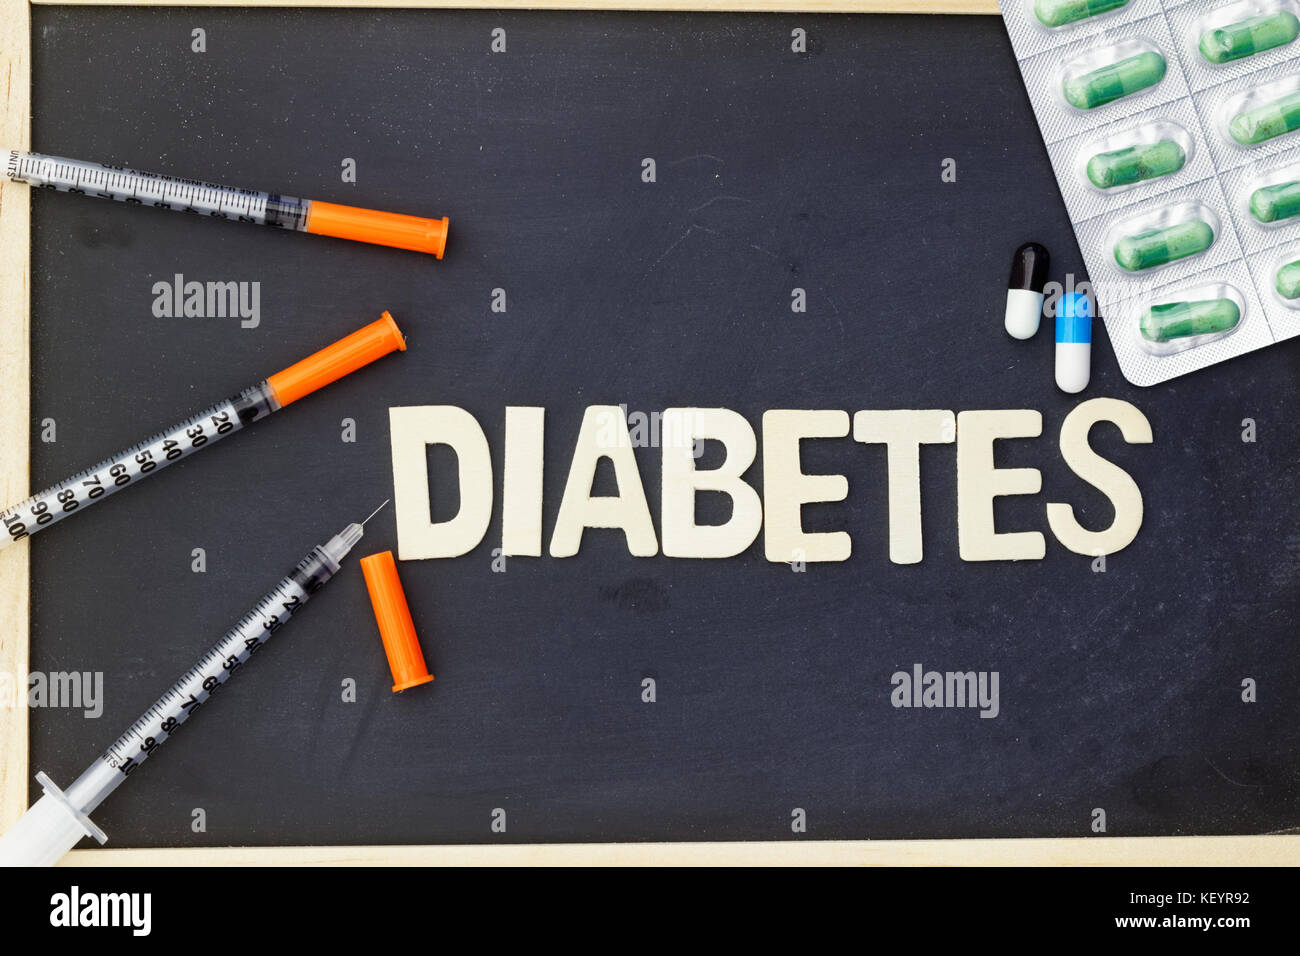 Word DIABETES with insulin syringe and medication - Stock Image